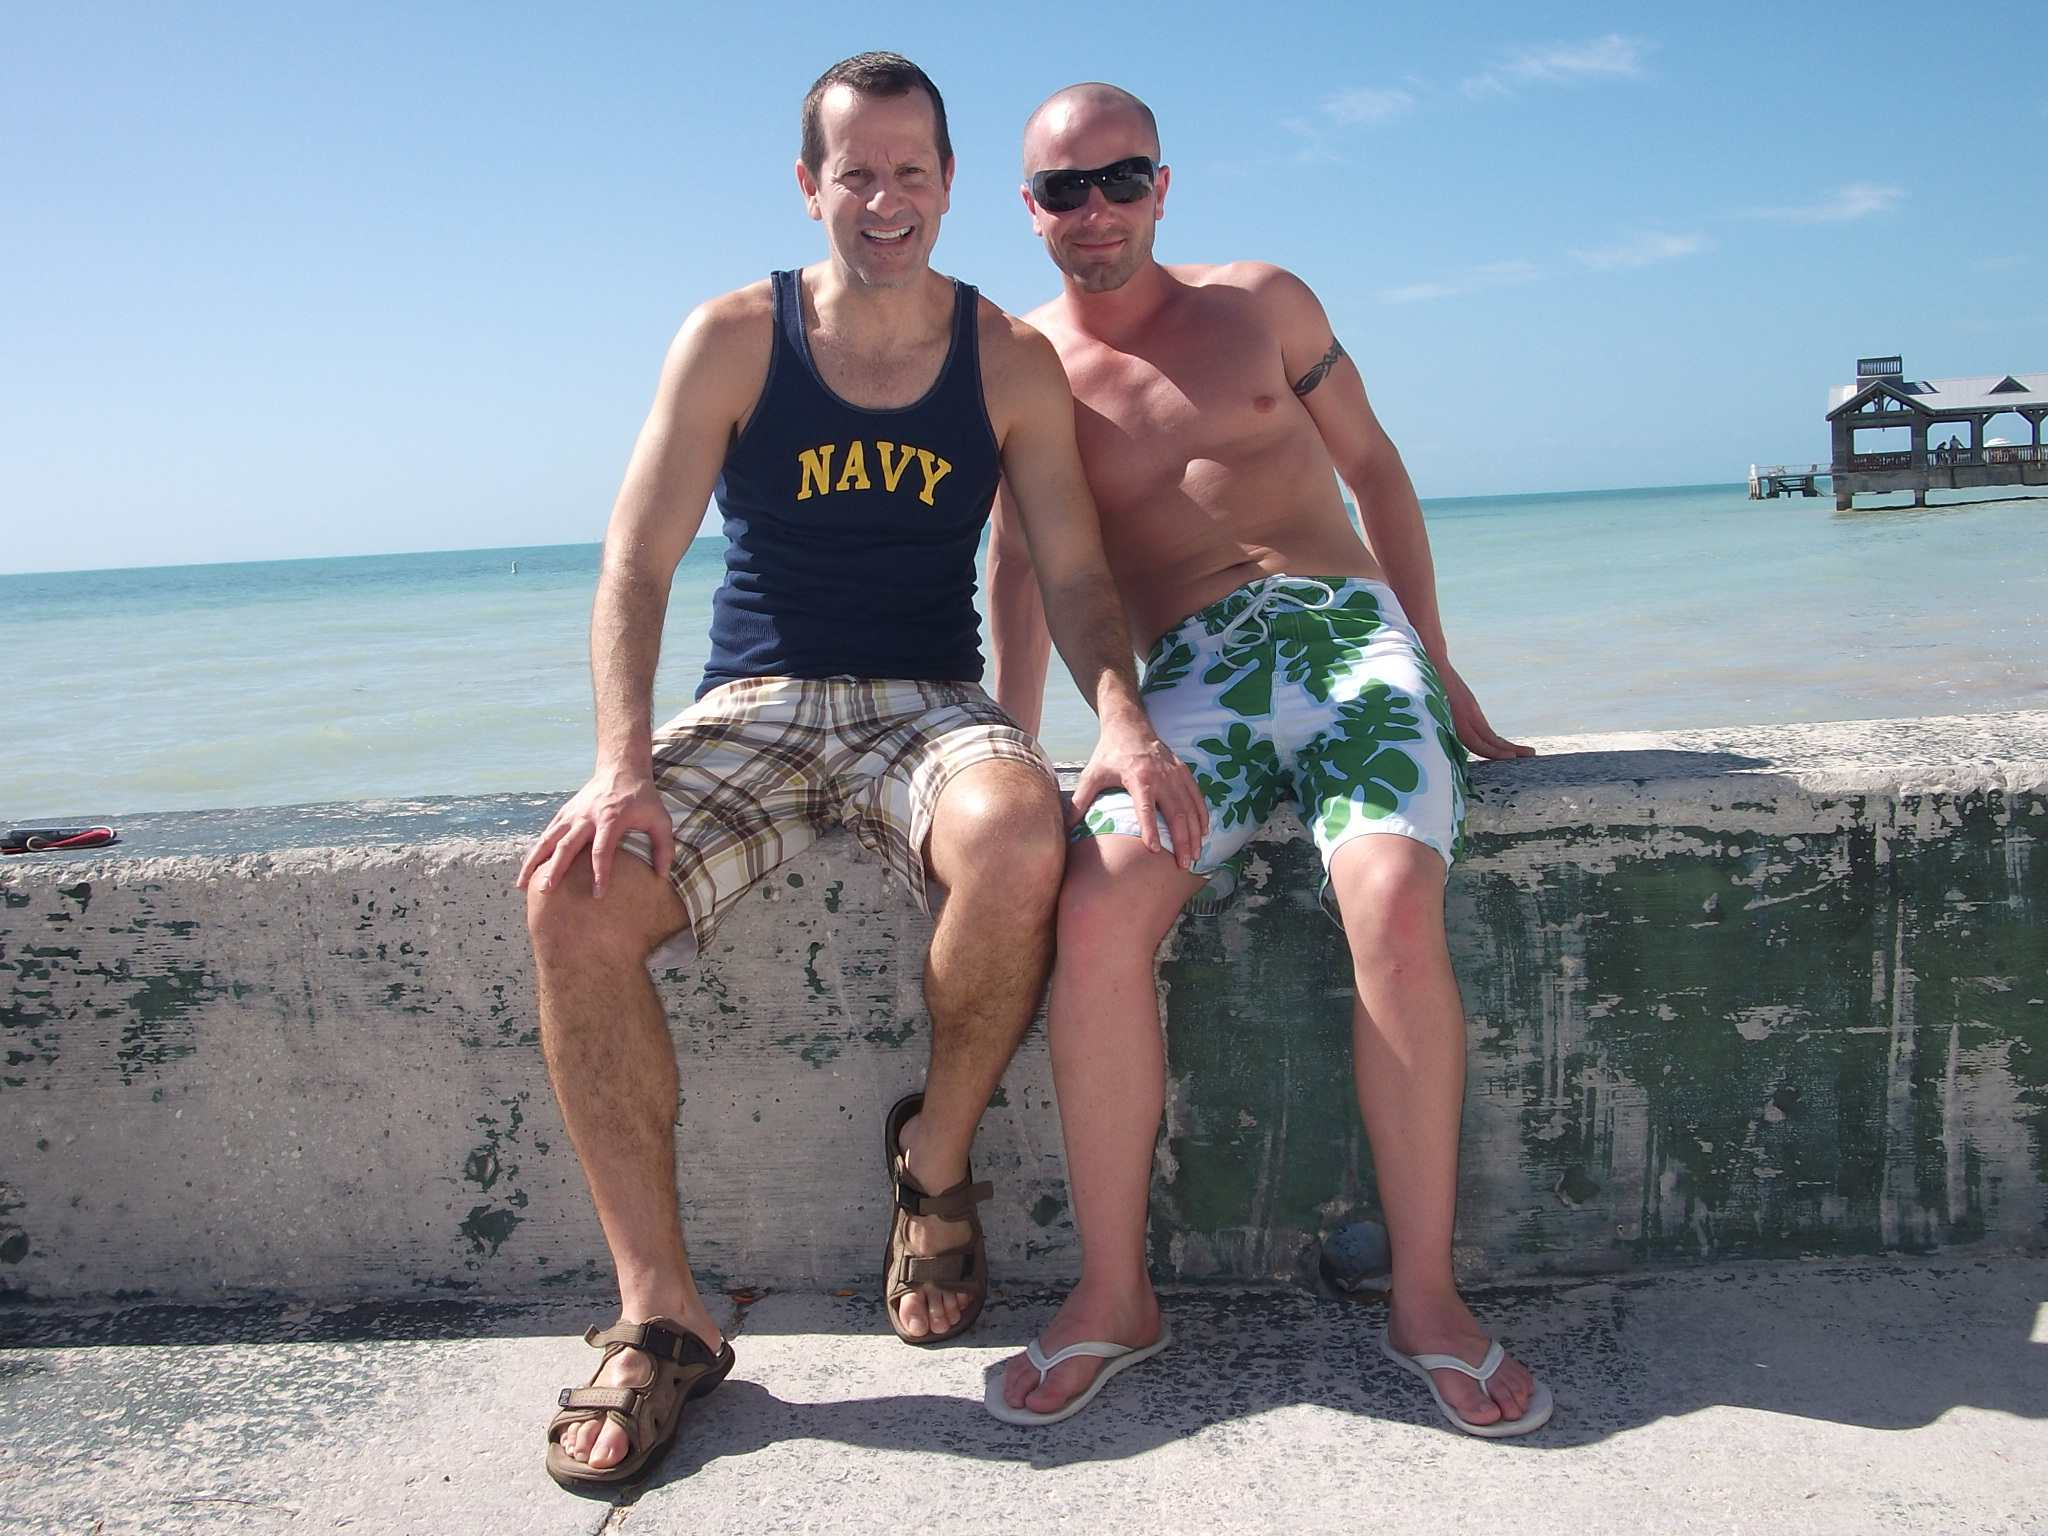 That's me, left, and friend Michael in Key West